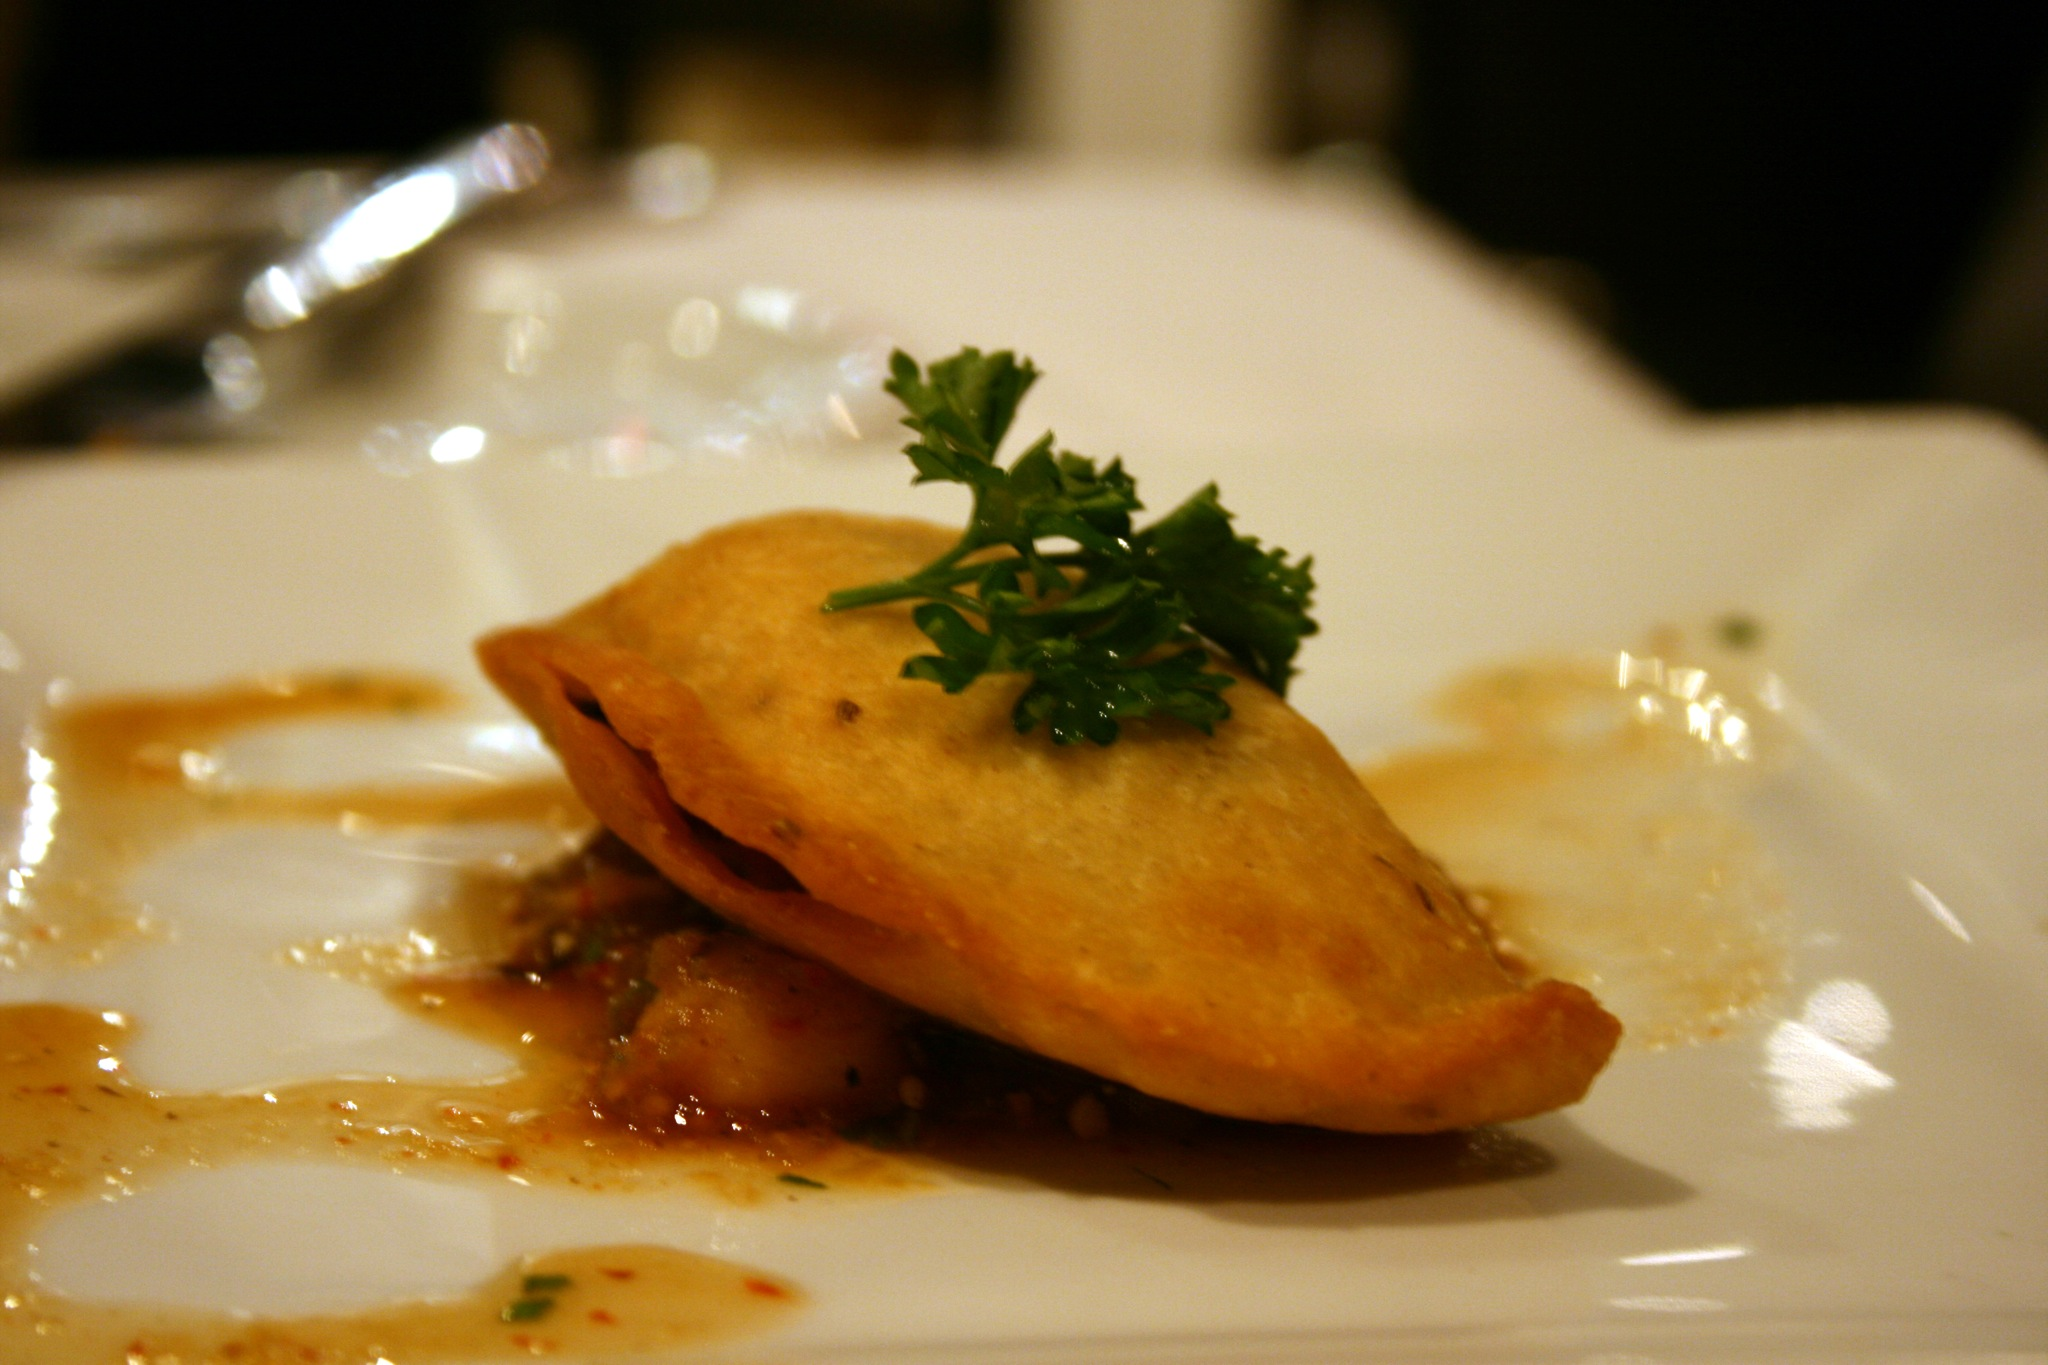 Empanadas stuffed with mussels